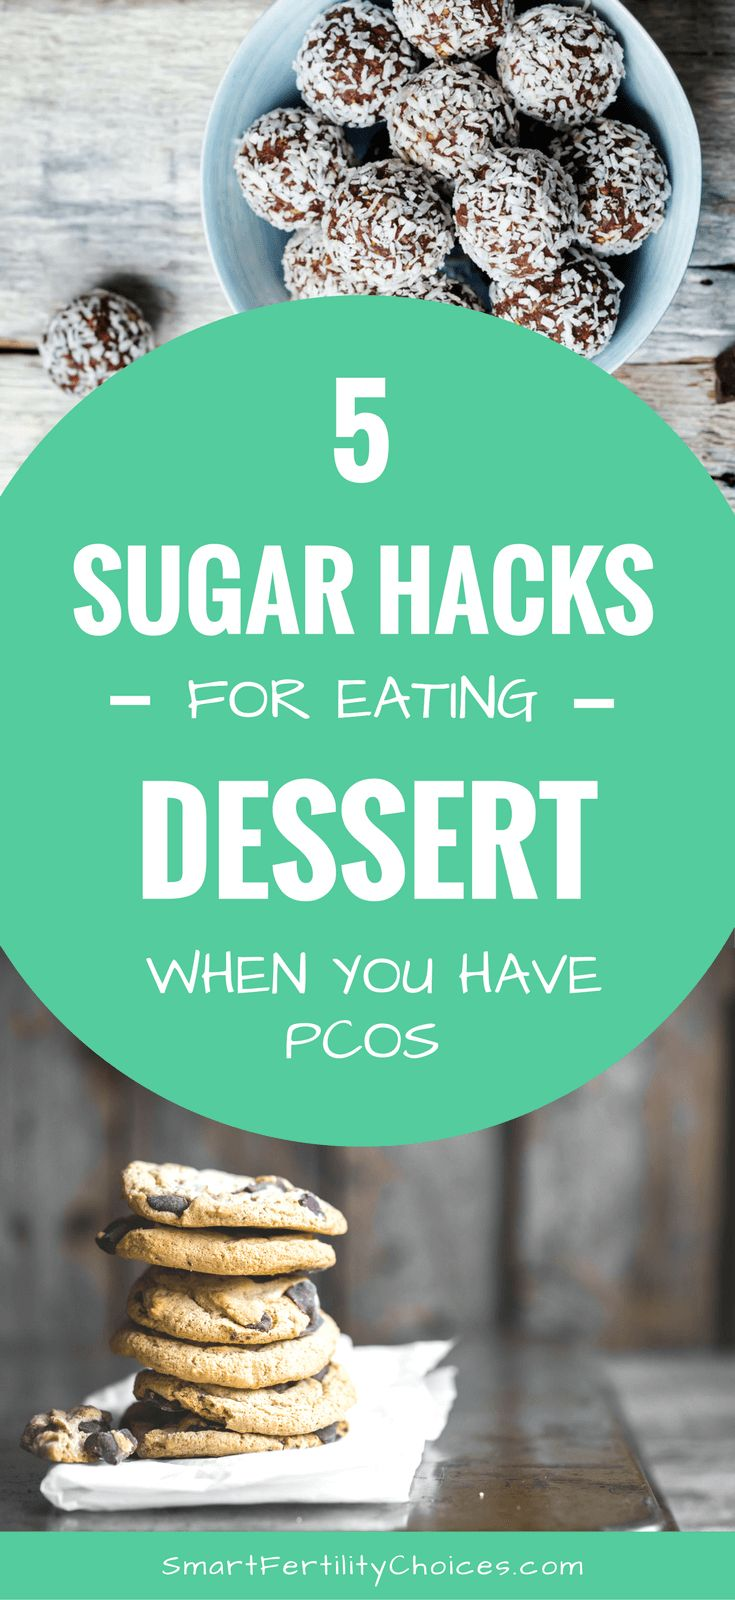 Want PCOS recipes for desserts that suit your PCOS diet? Achieve weightloss and overcome infertility using my 5 essential sugar hacks!